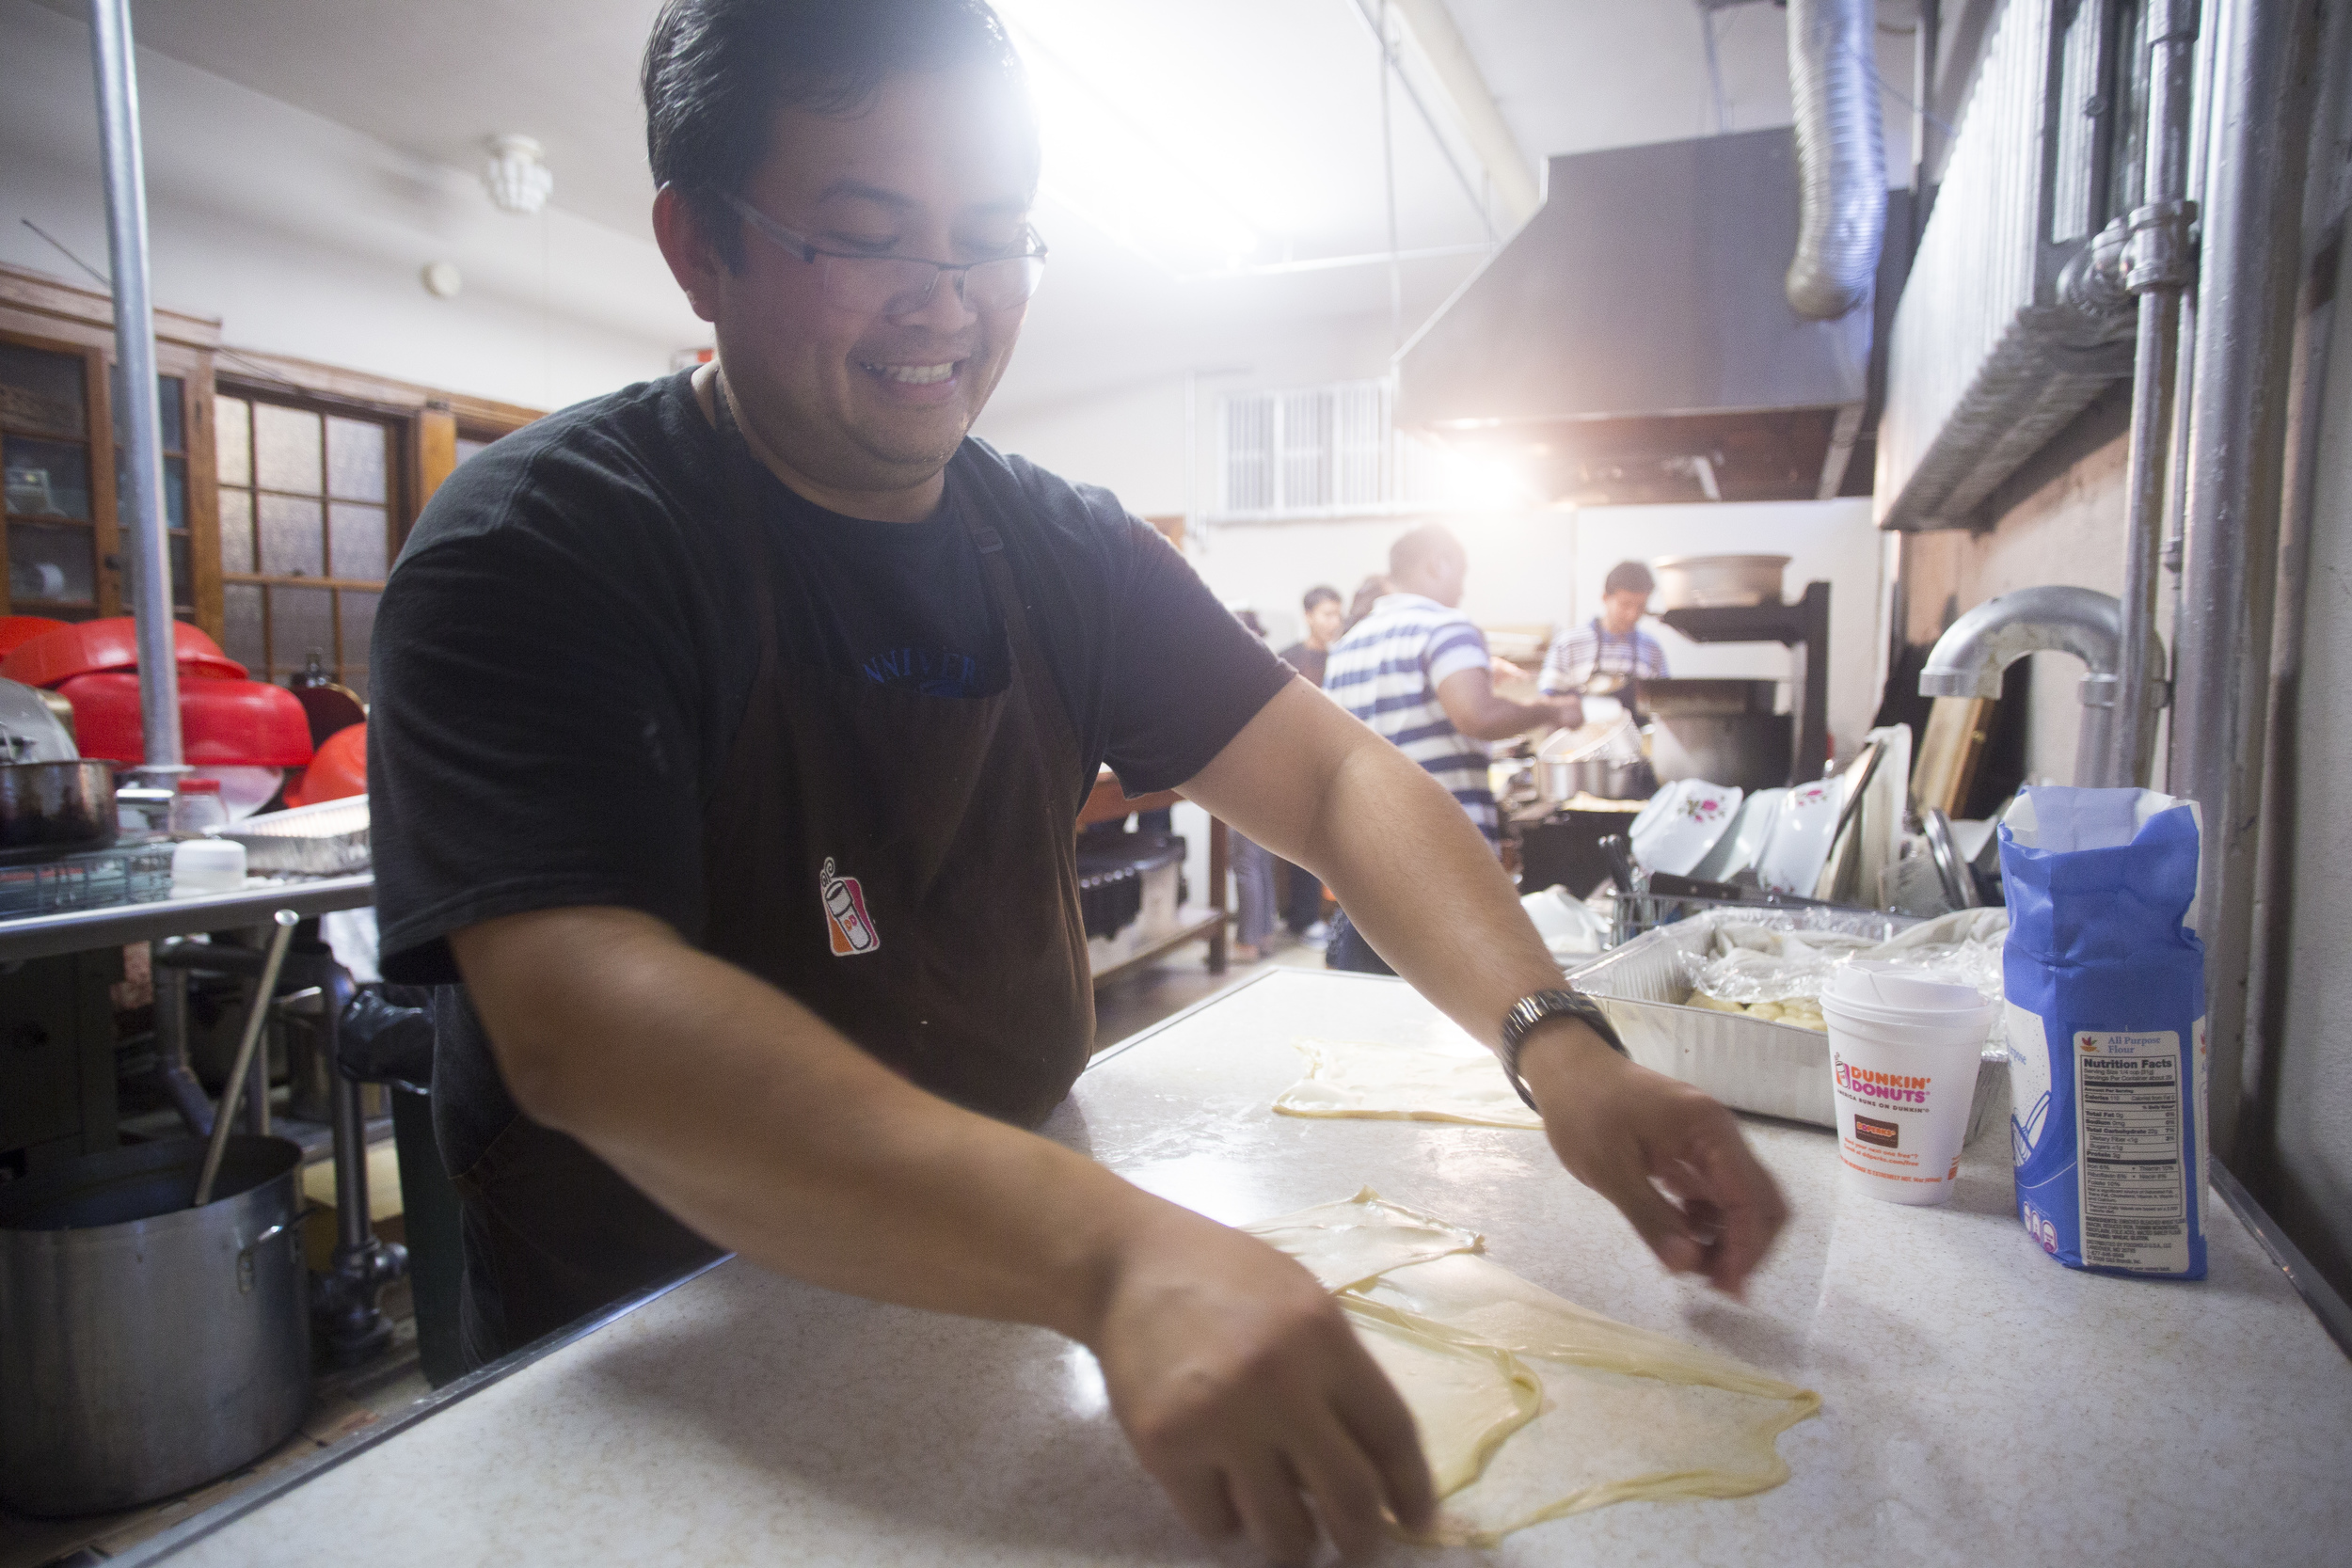 Reverend Maung Maung Htwe has been preparing food for the Burmese Food Fair all morning. By Ann Wang